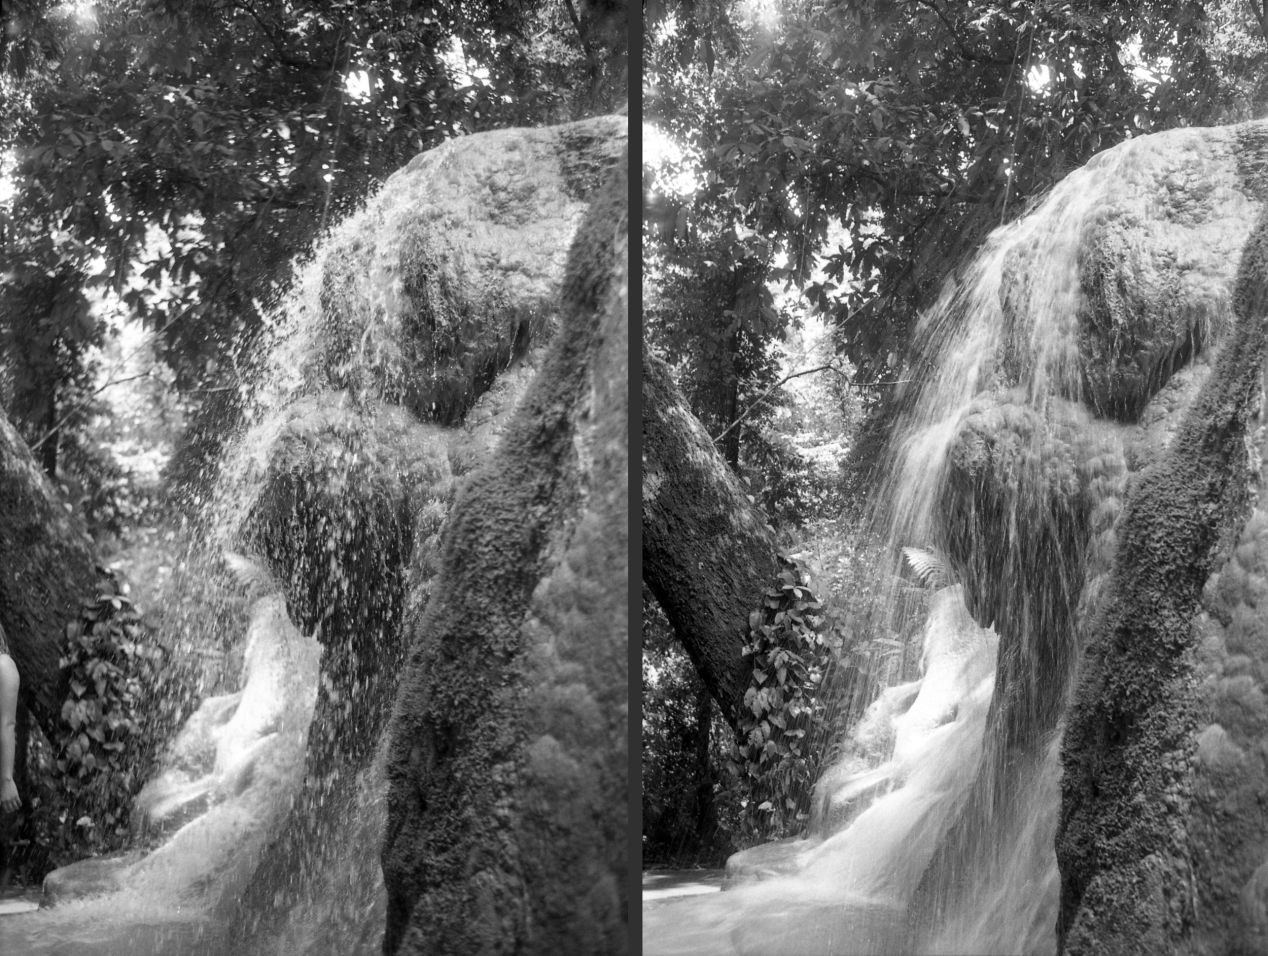 "On the left, the photo is taken with fast shutter speed, allowing the camera to ""freeze"" the water droplets. On the right, the droplets are no longer seen; they have become smudged via motion blur."